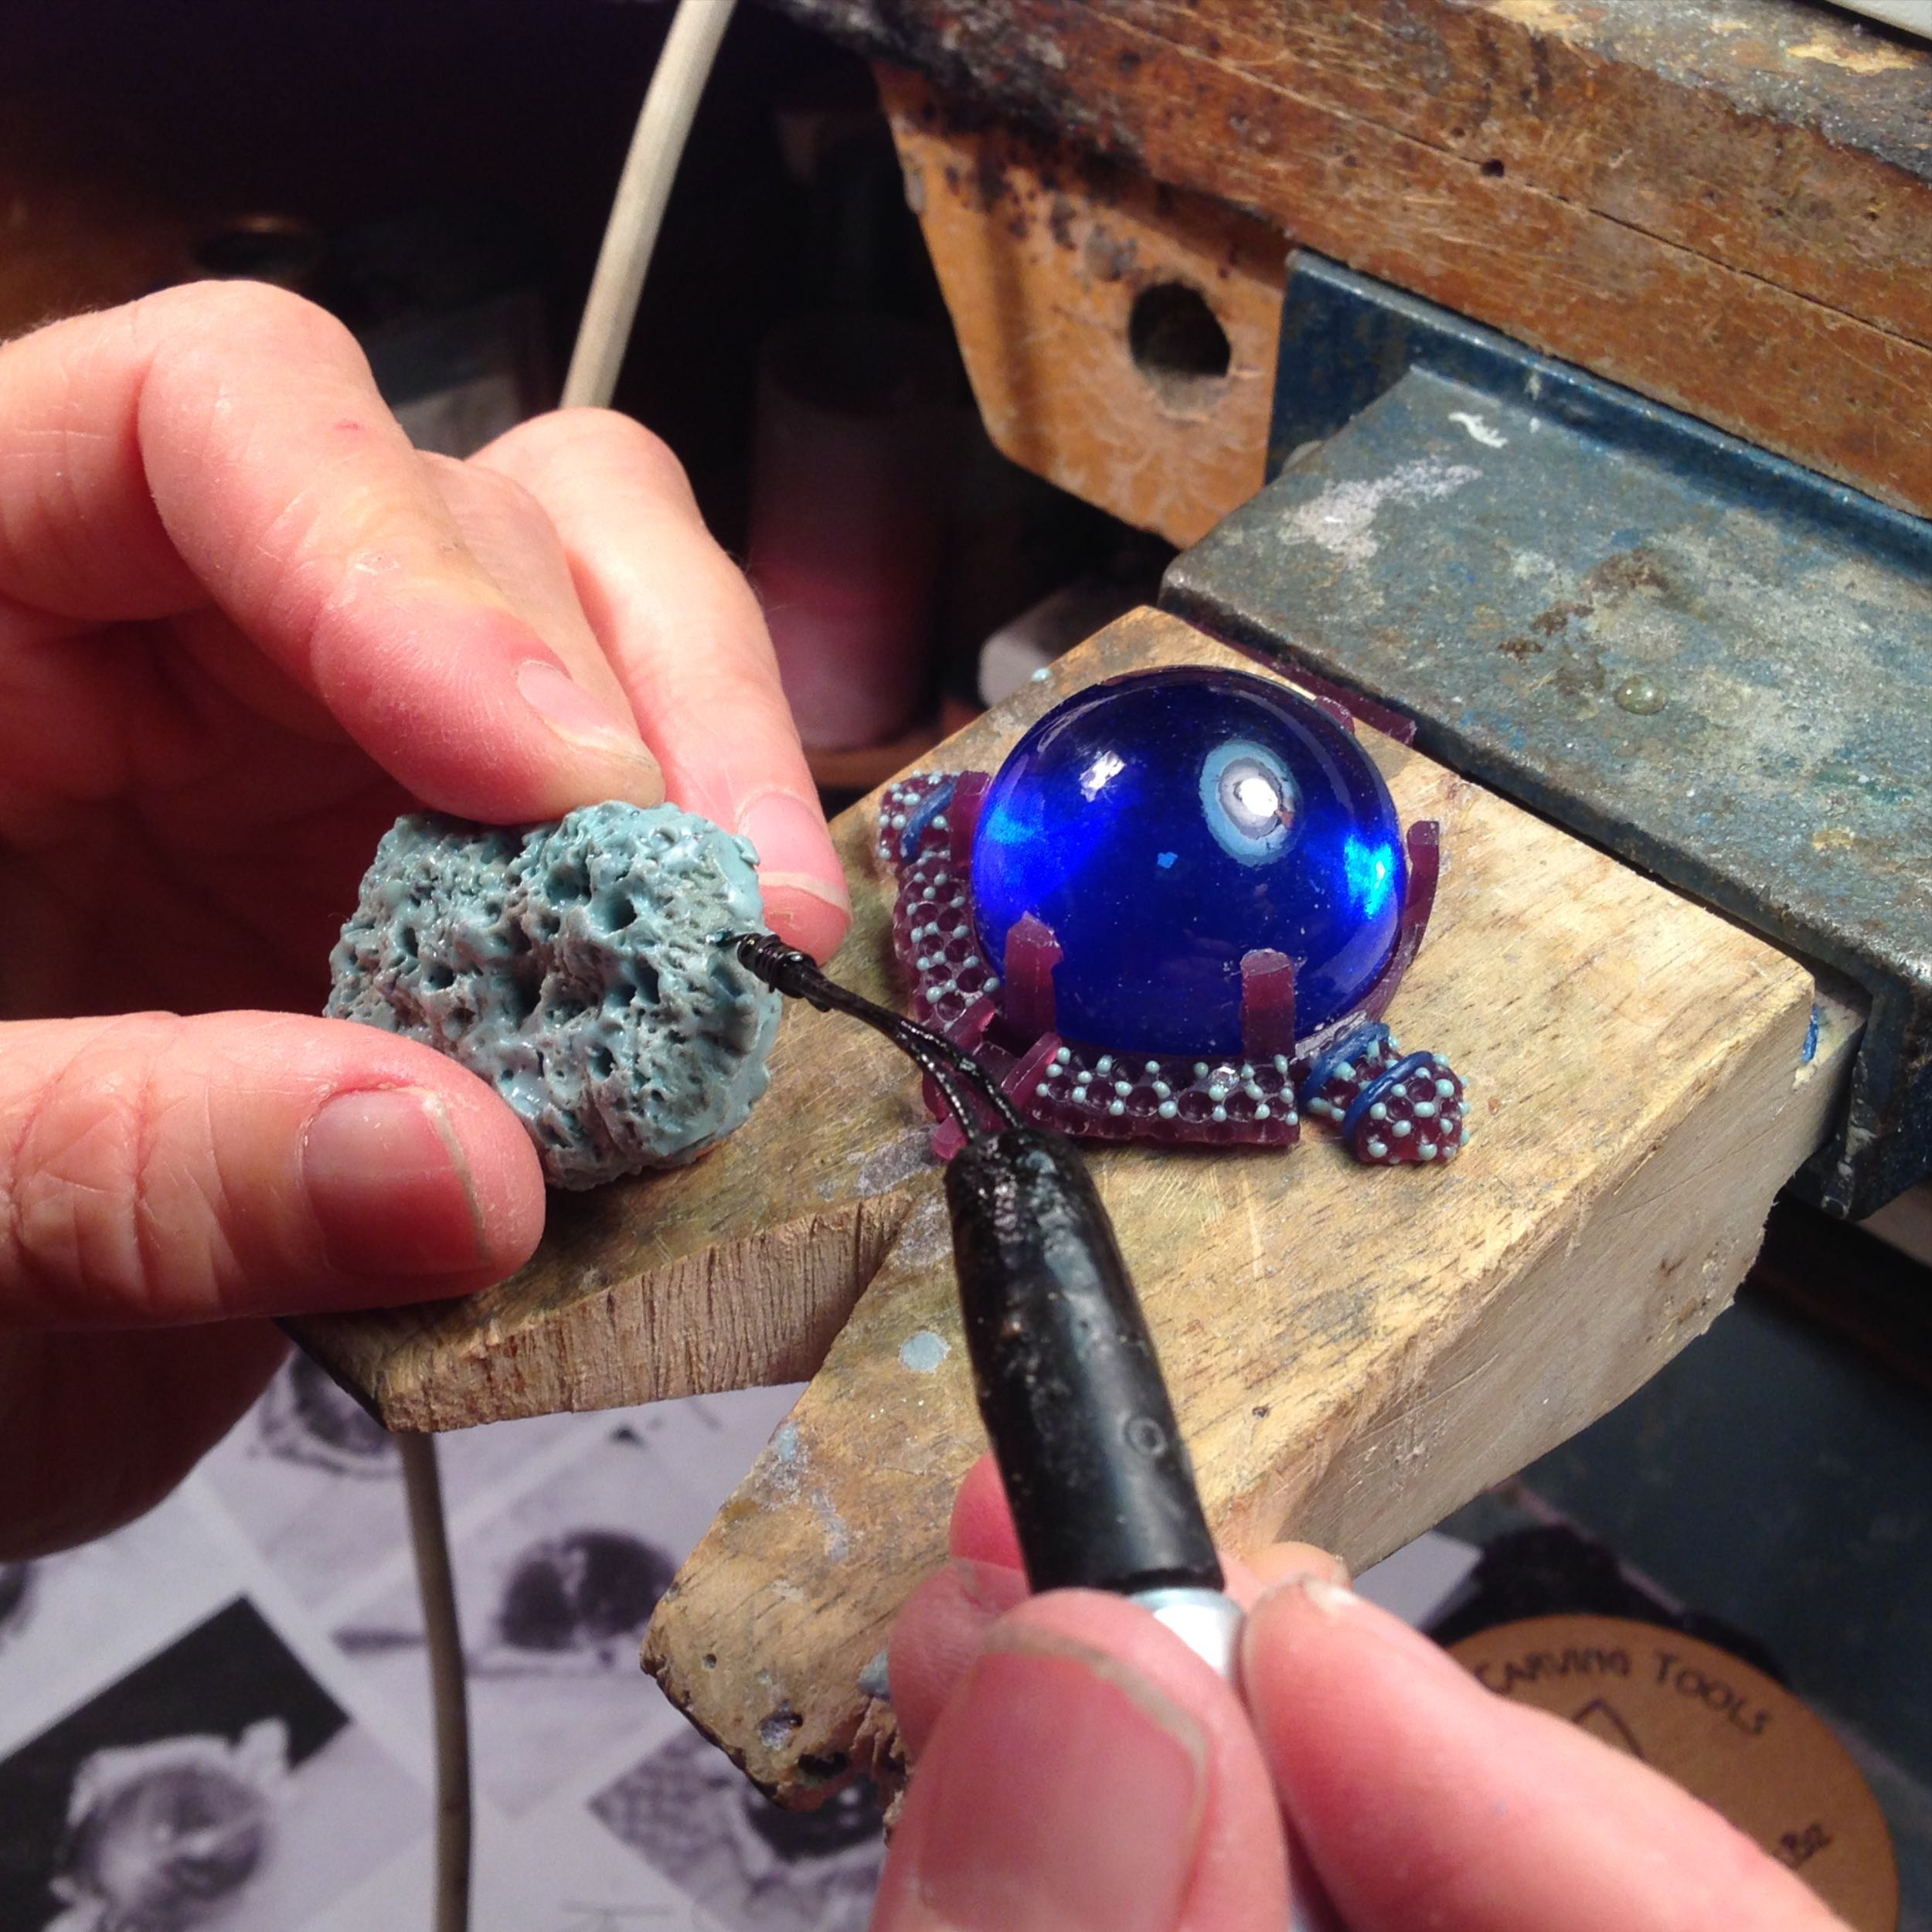 Step 2: Developing the model - shown here adding micro wax balls to model